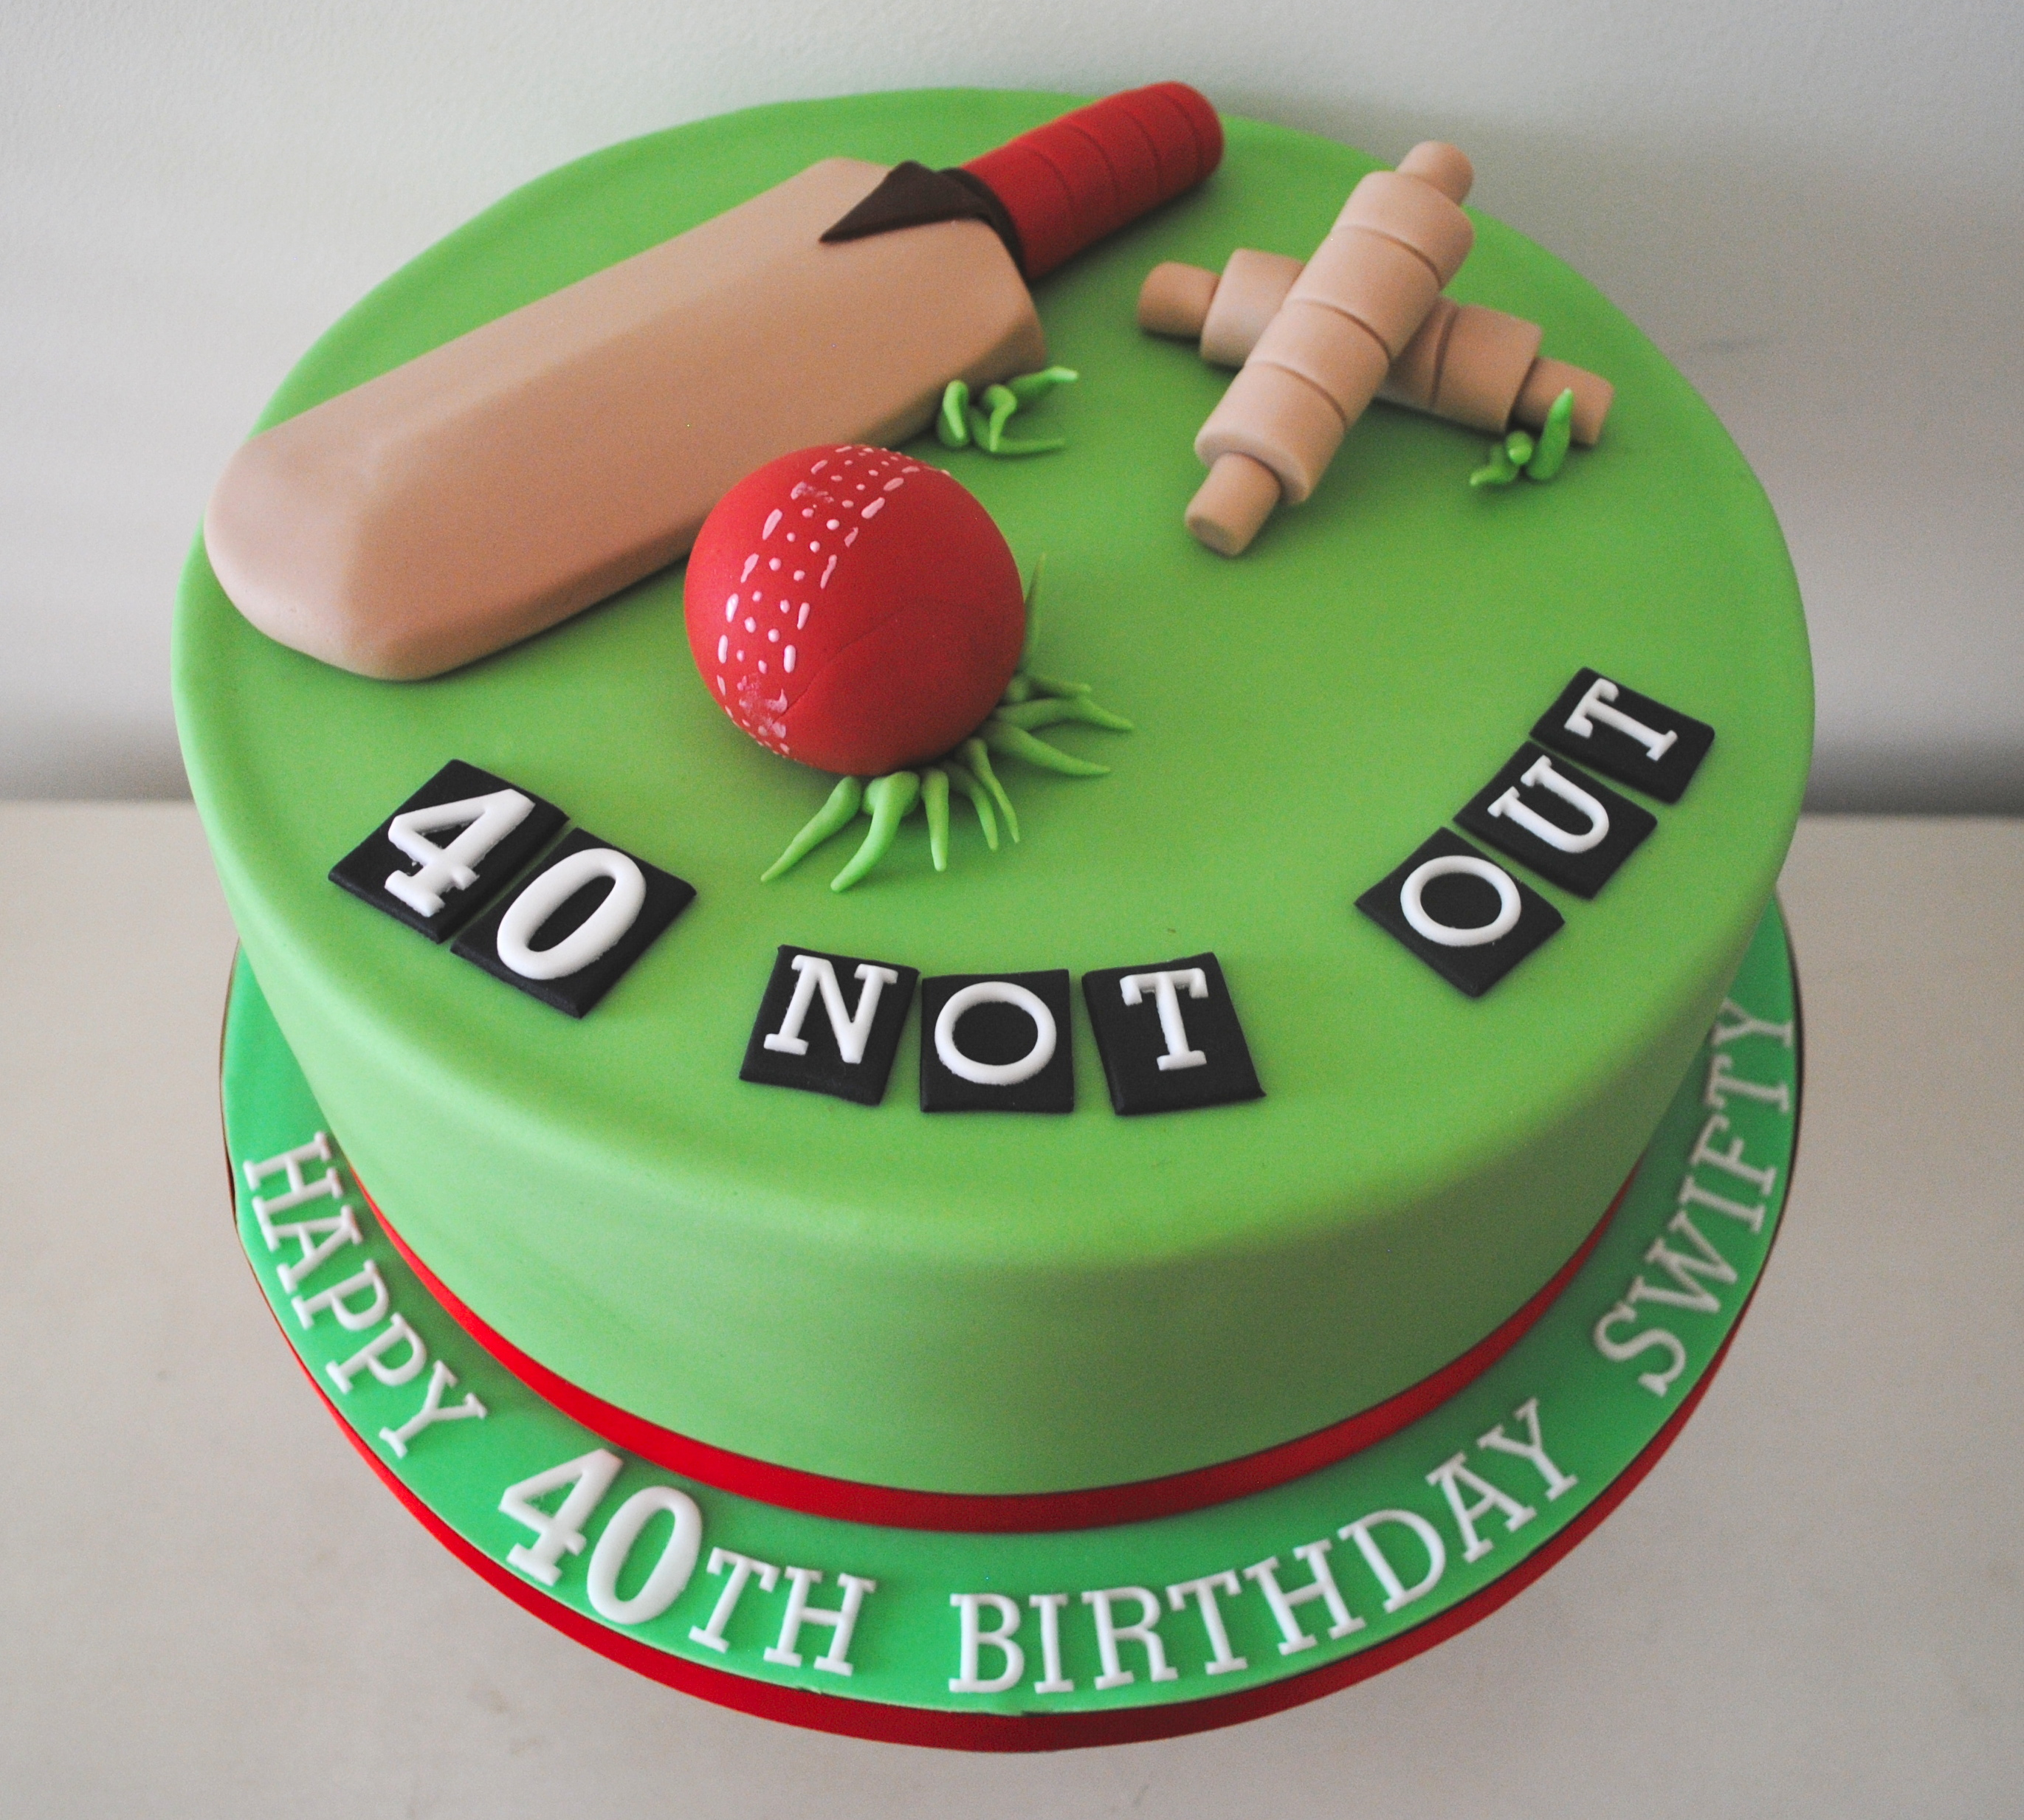 Cricket Birthday Cake Images : Cupcakes Gallery Cupcakes London Miss Cupcakes